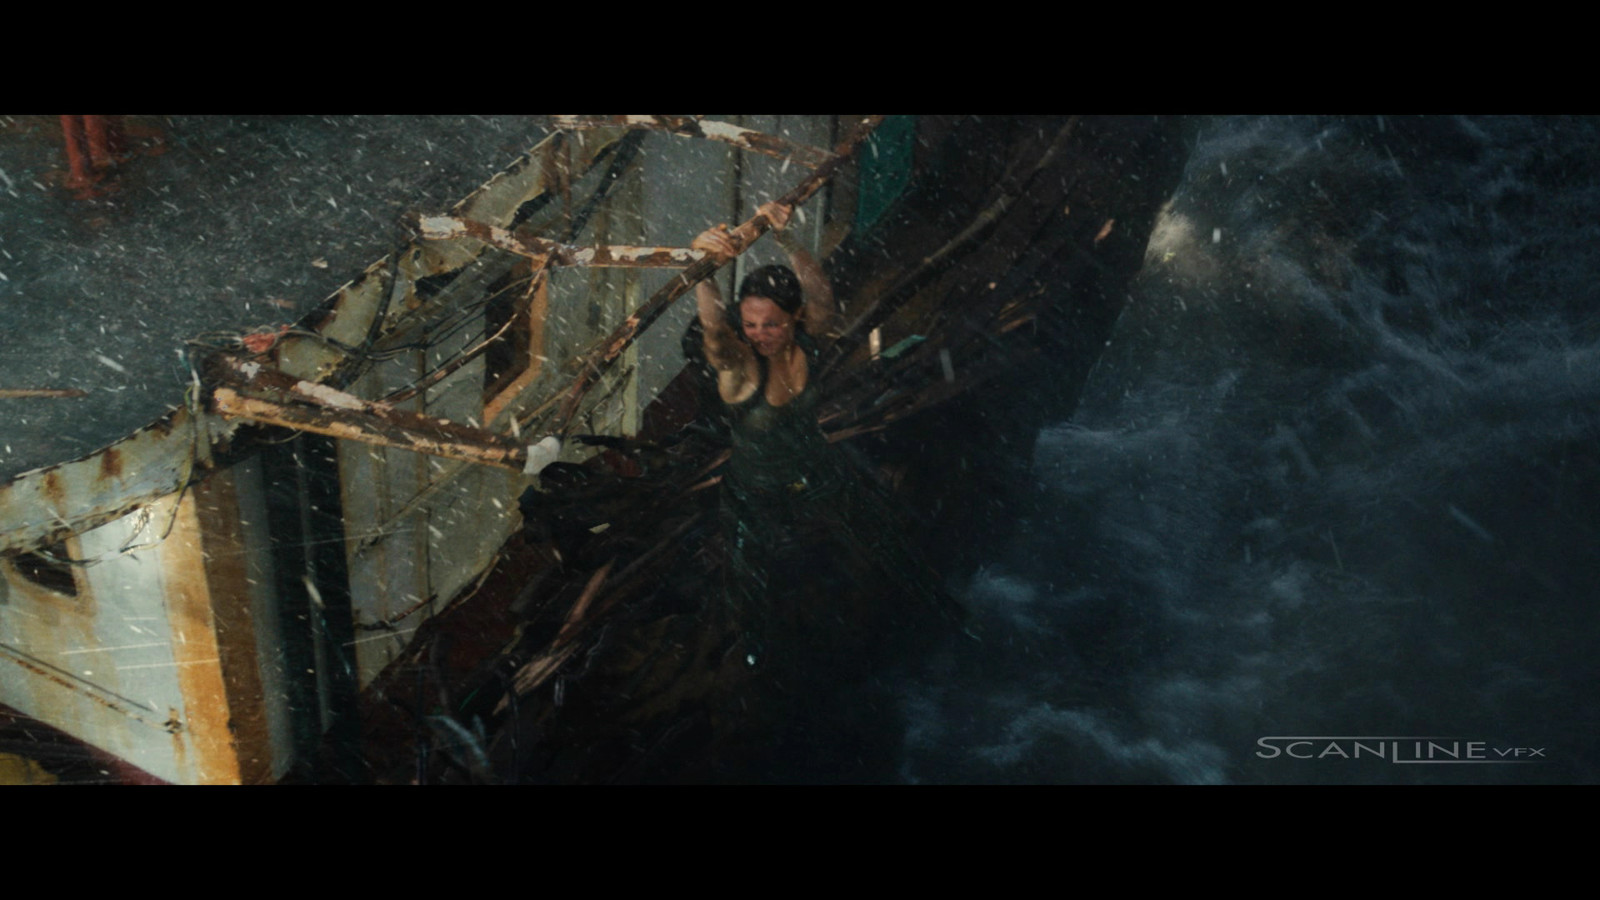 Compositing and integration work I have done in 2018 at Scanline VFX, as a Compositor. Featuring: Tomb Raider.